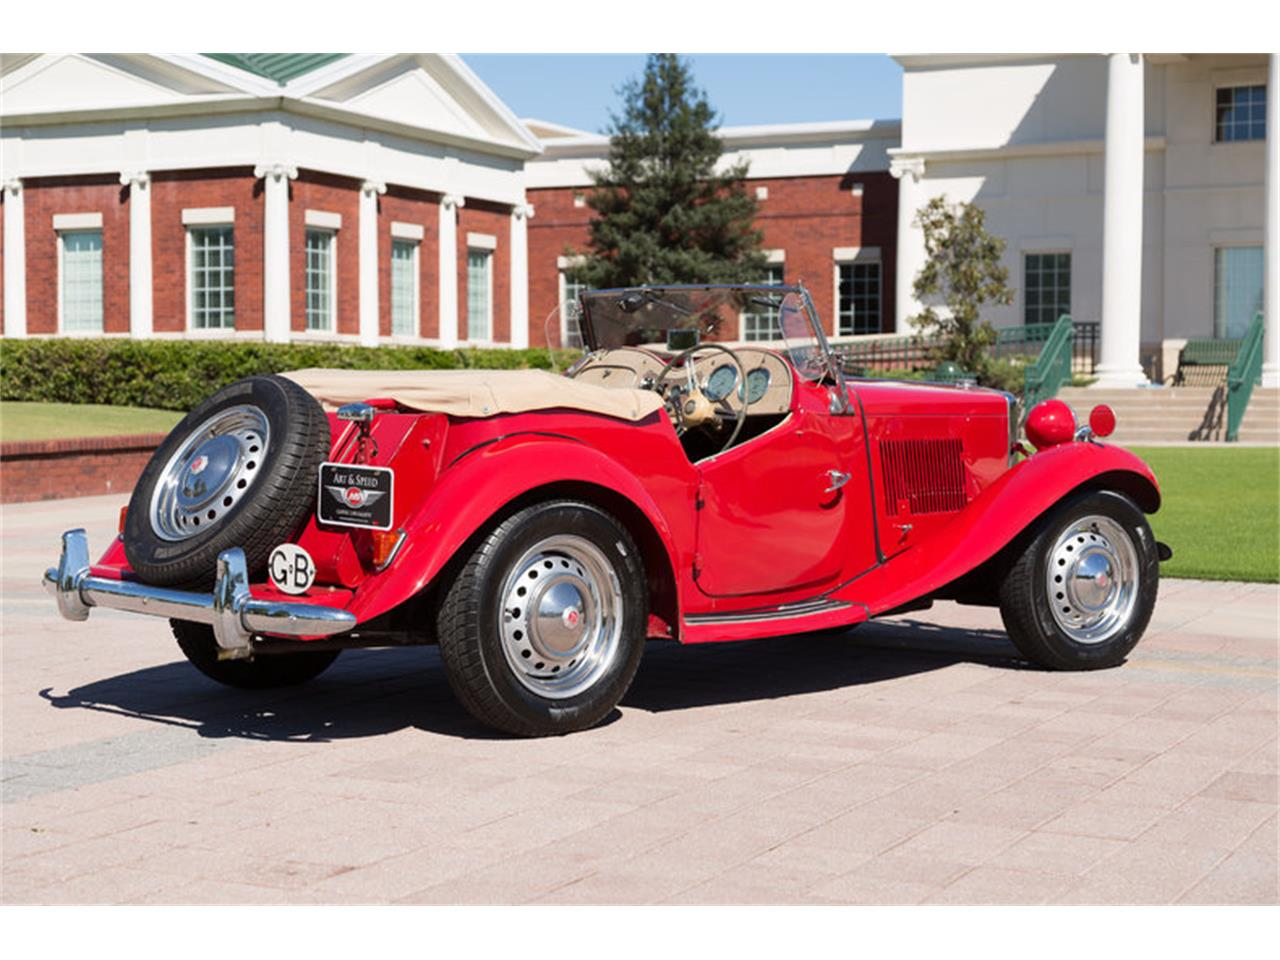 Large Picture of '51 MG TD located in Collierville Tennessee - $27,900.00 - JKEU